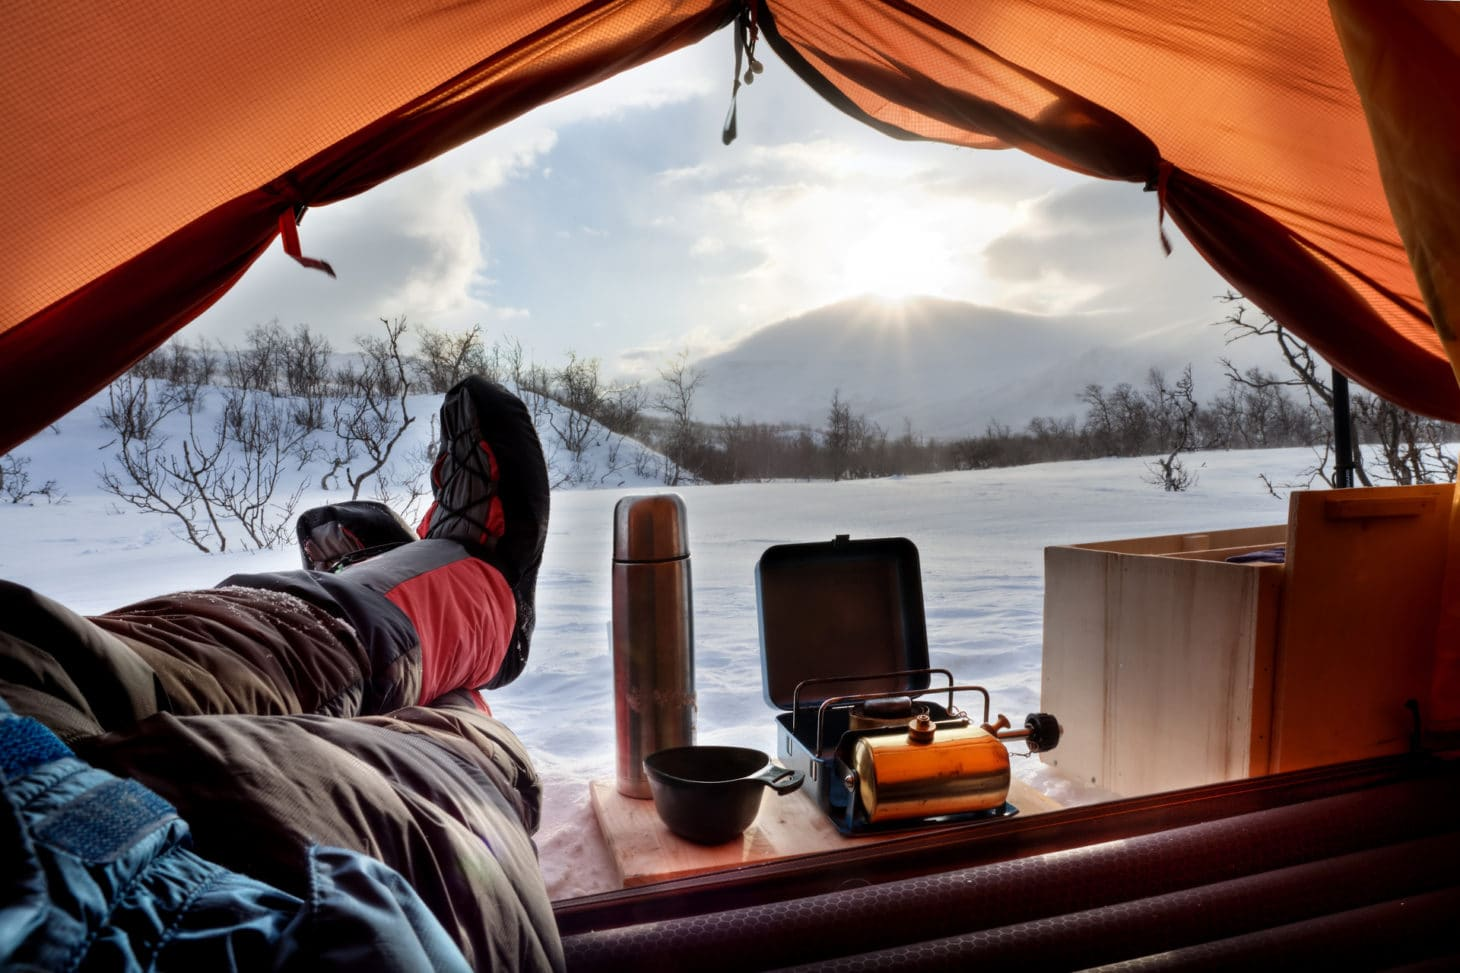 Open tent during a winter morning with camp cooking gear